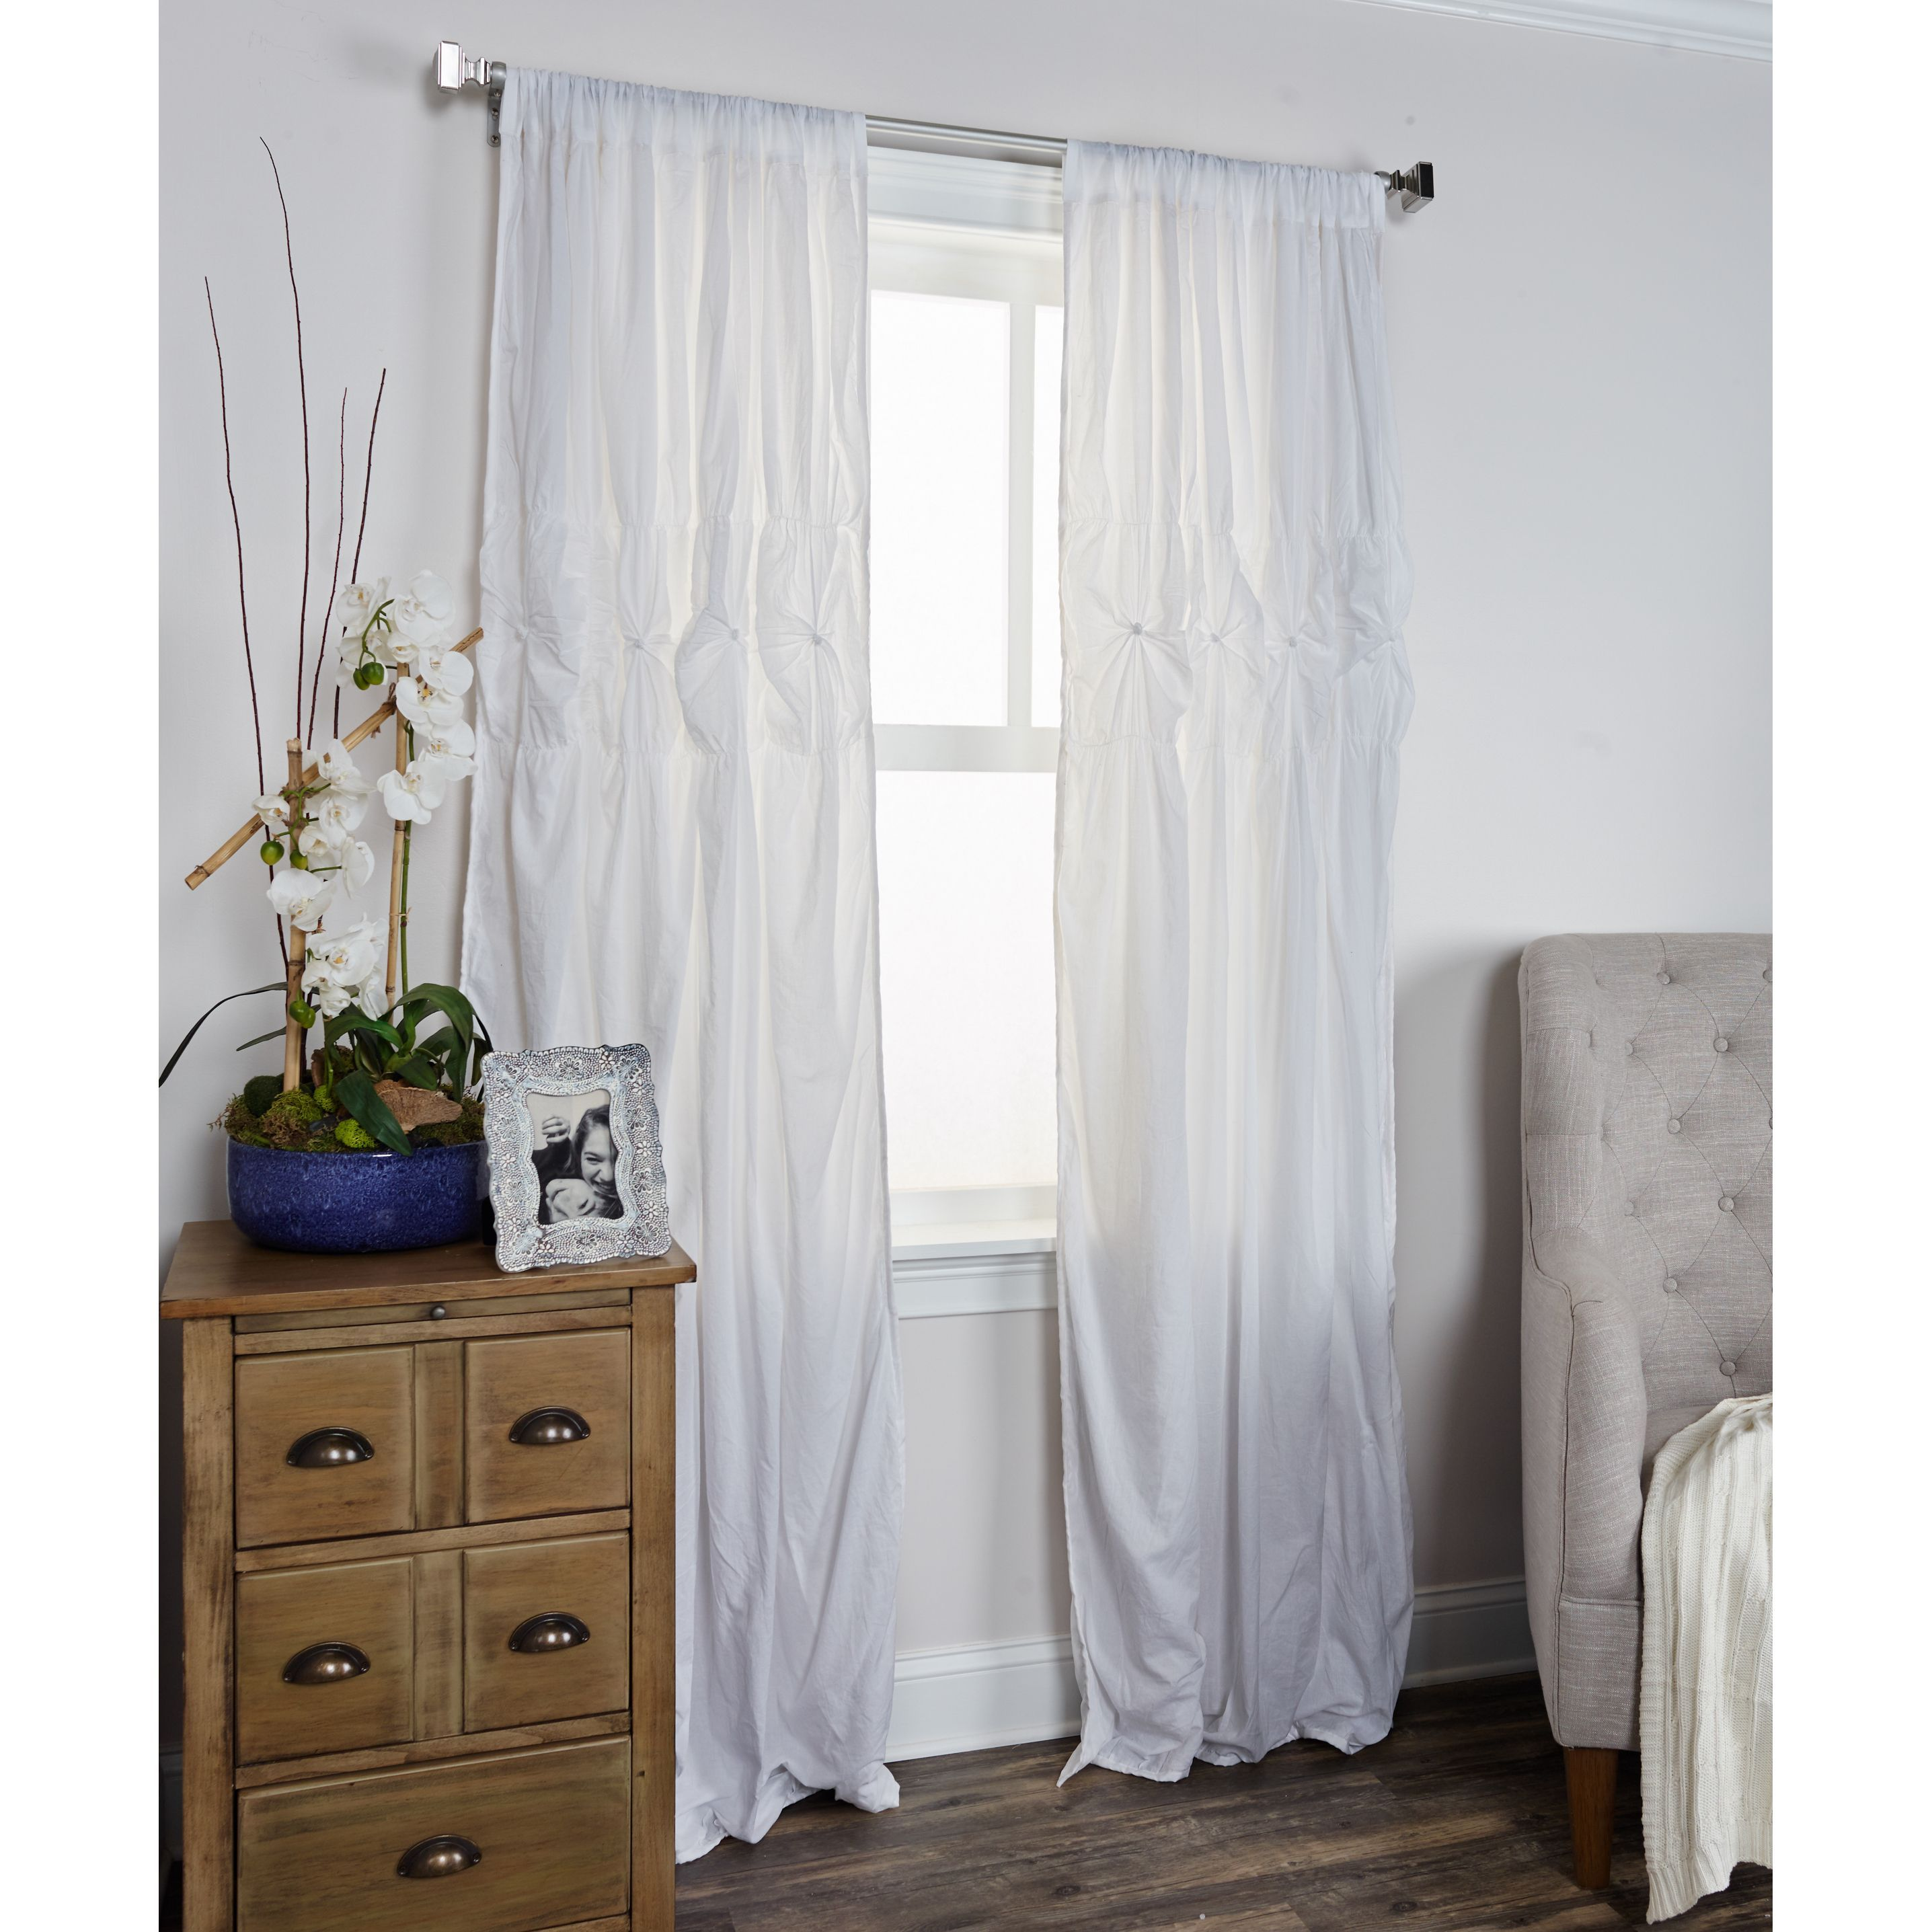 curtains room living loading zoom curtain buy for p sheer cotton white